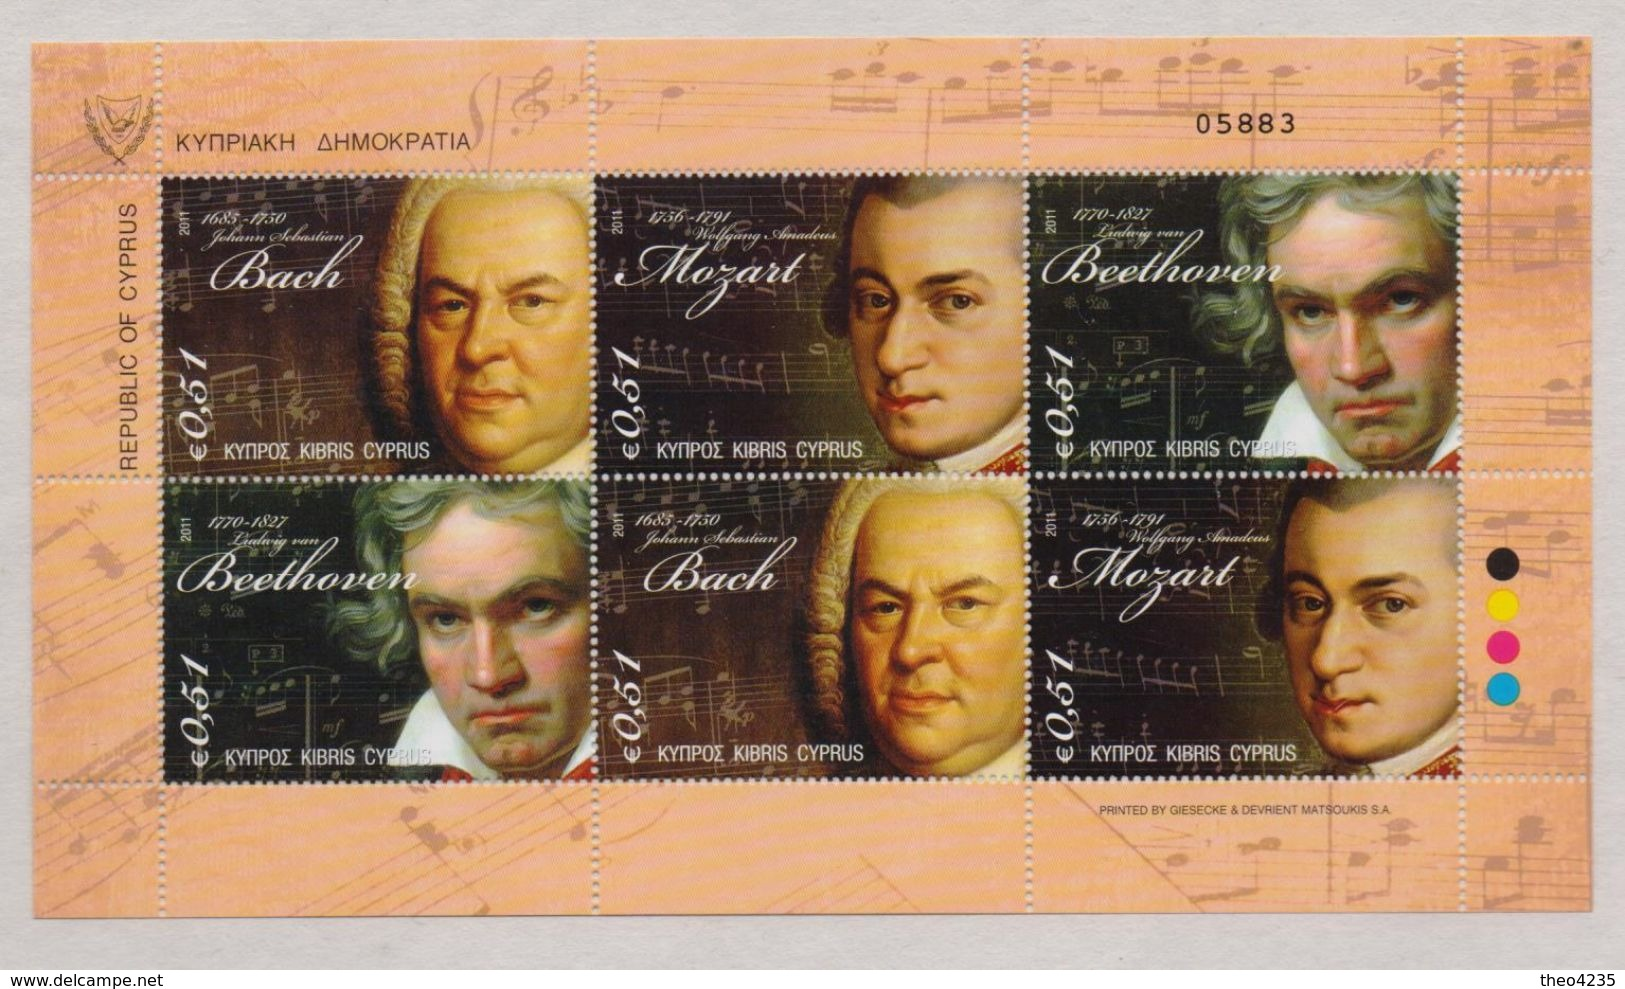 CYPRUS STAMPS FAMOUS COMPOSERS/SHEETLET- 28/1/11-MNH-COMPLETE SET(K) - Cyprus (Republic)